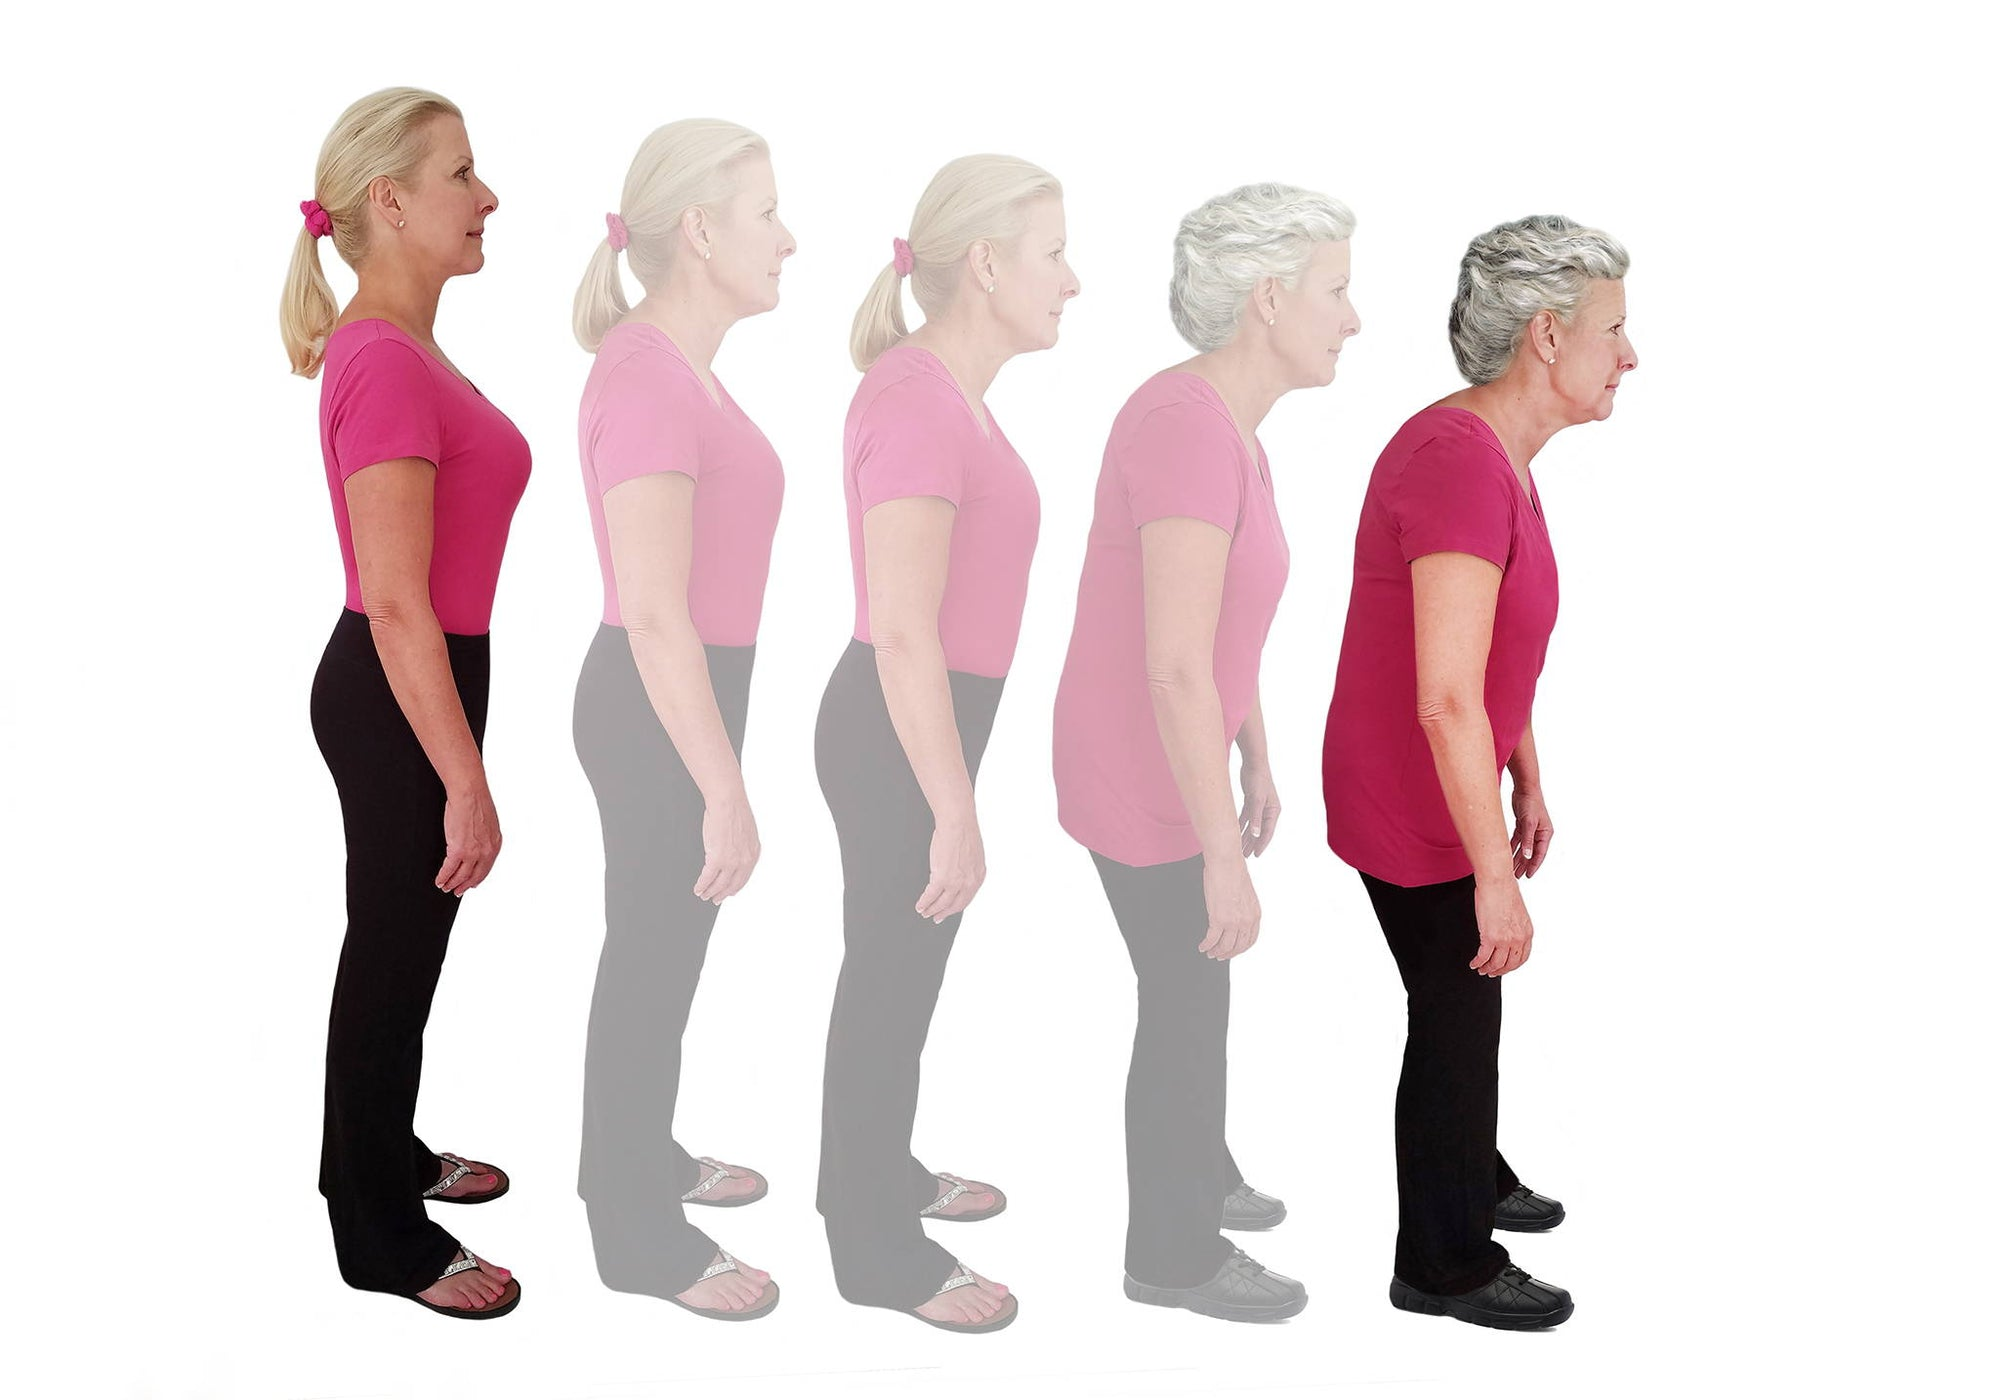 How To Prevent Shrinking From Poor Posture